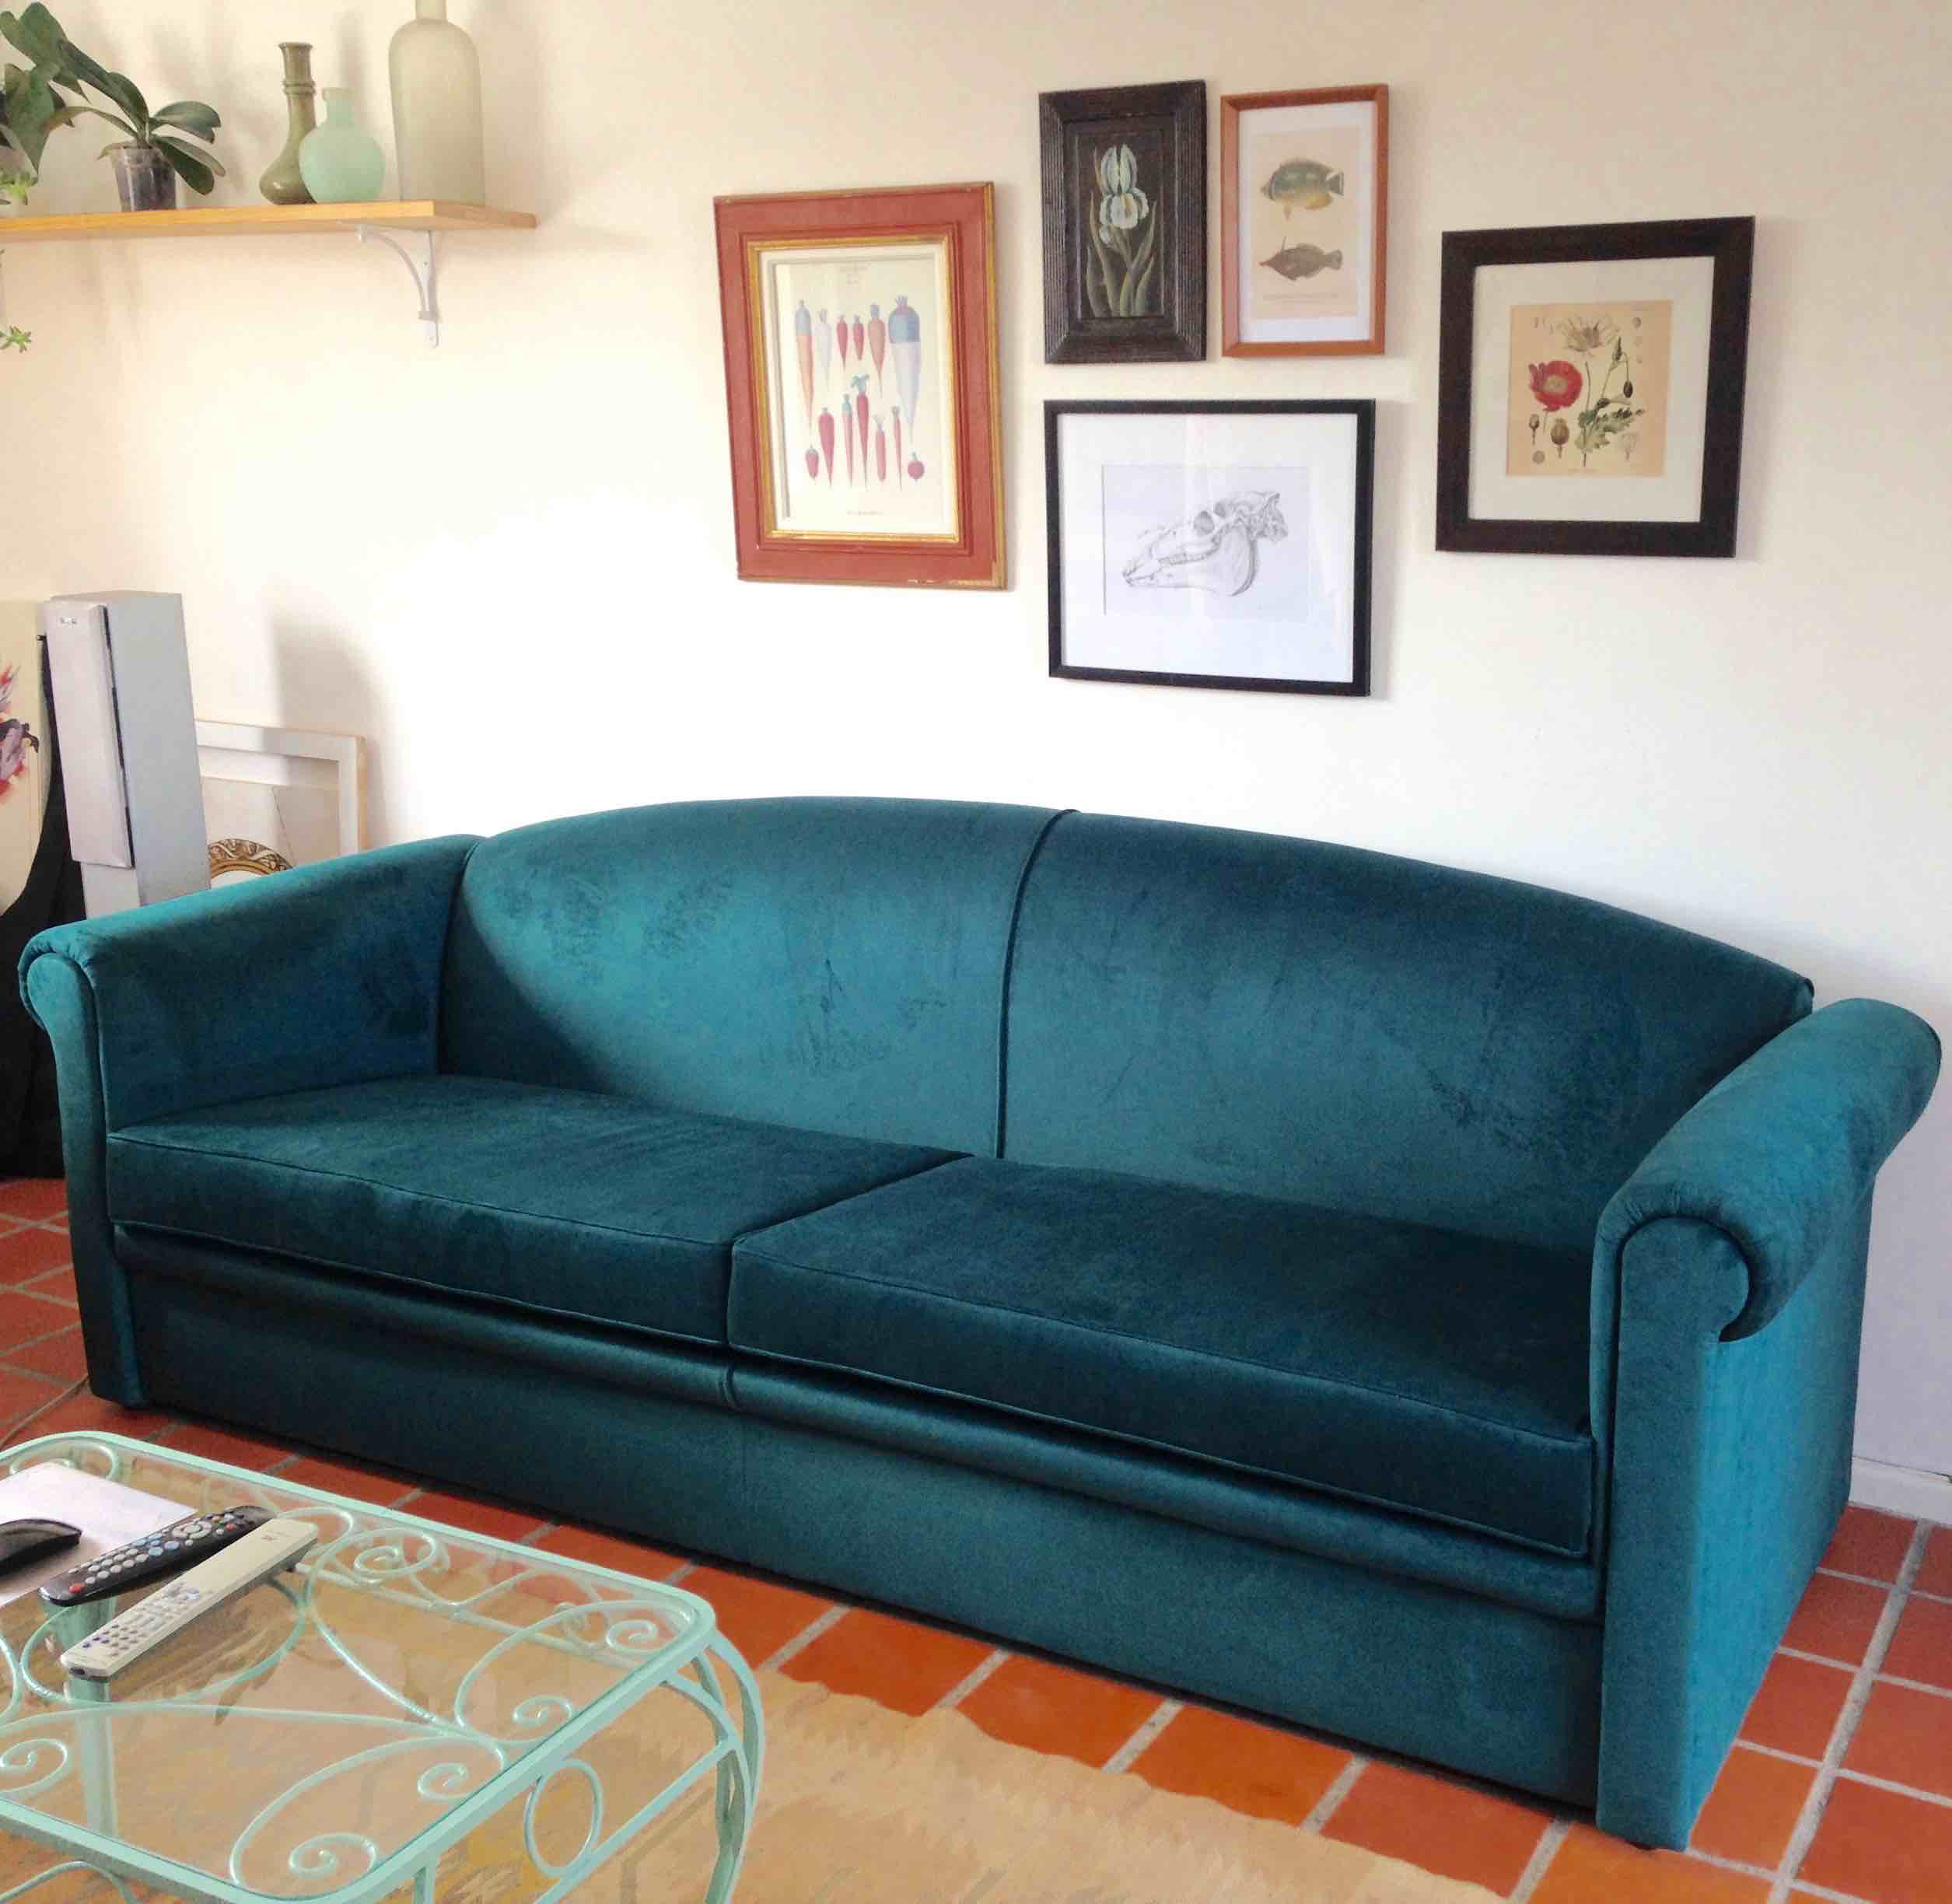 Reupholstering a couch with velvet upholstery cape town for Recover furniture cape town